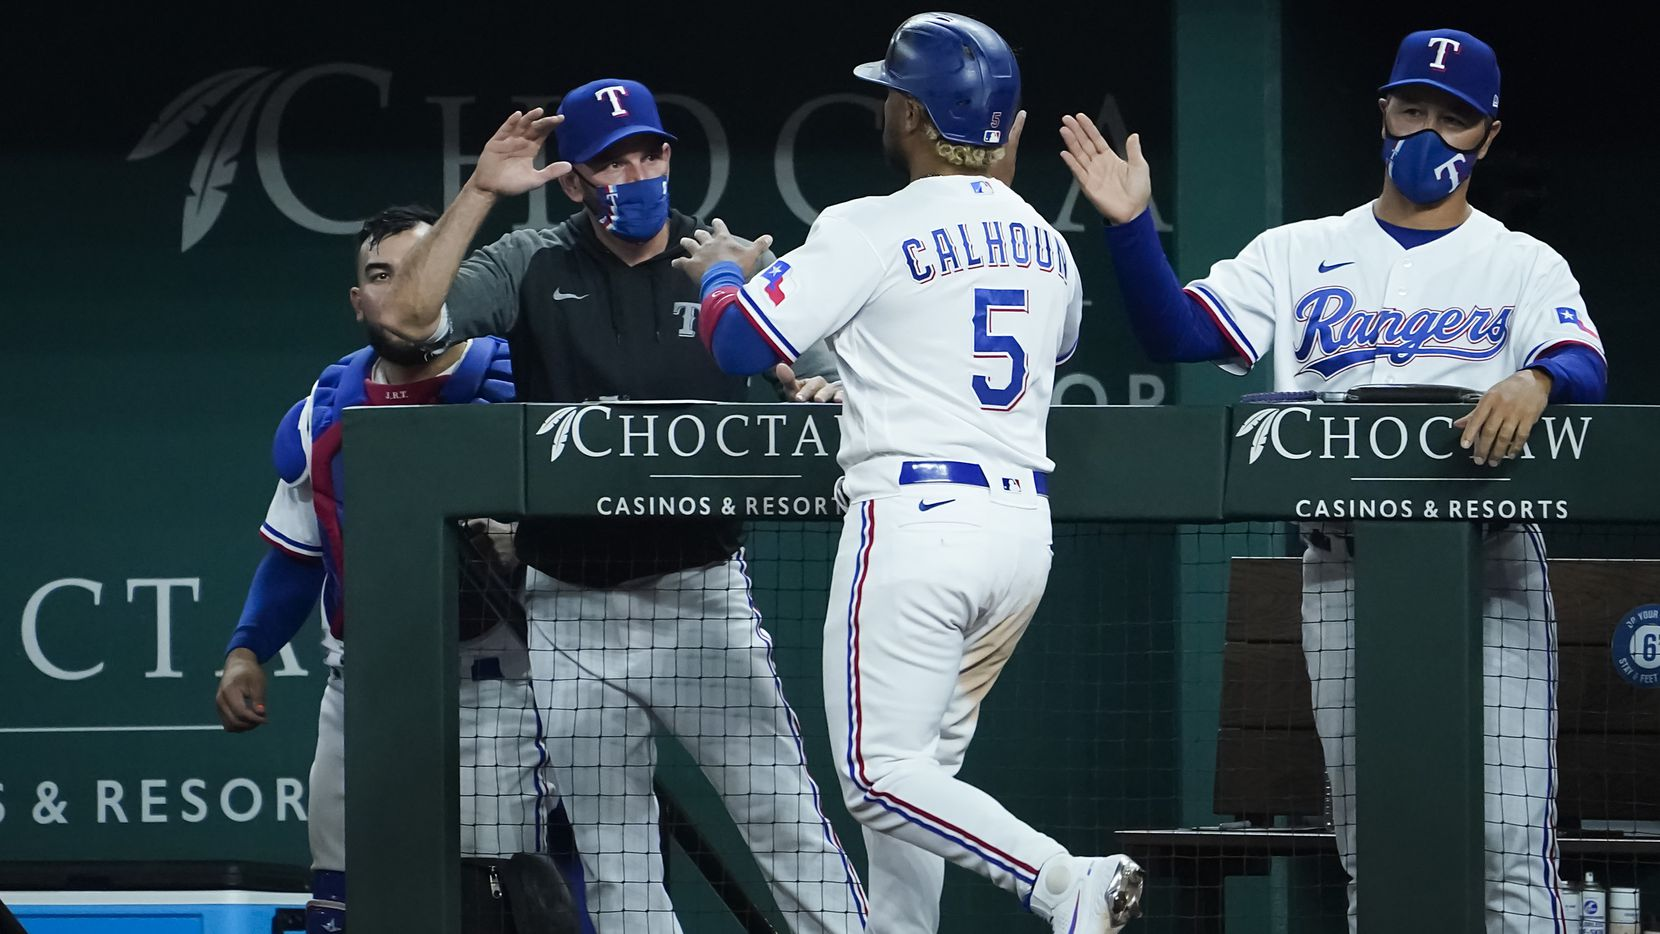 Texas Rangers designated hitter Willie Calhoun celebrates with Texas Rangers manager Chris Woodward and bench coach Don Wakamatsu after scoring during the eighth inning against the Boston Red Sox at Globe Life Field on Saturday, May 1, 2021.